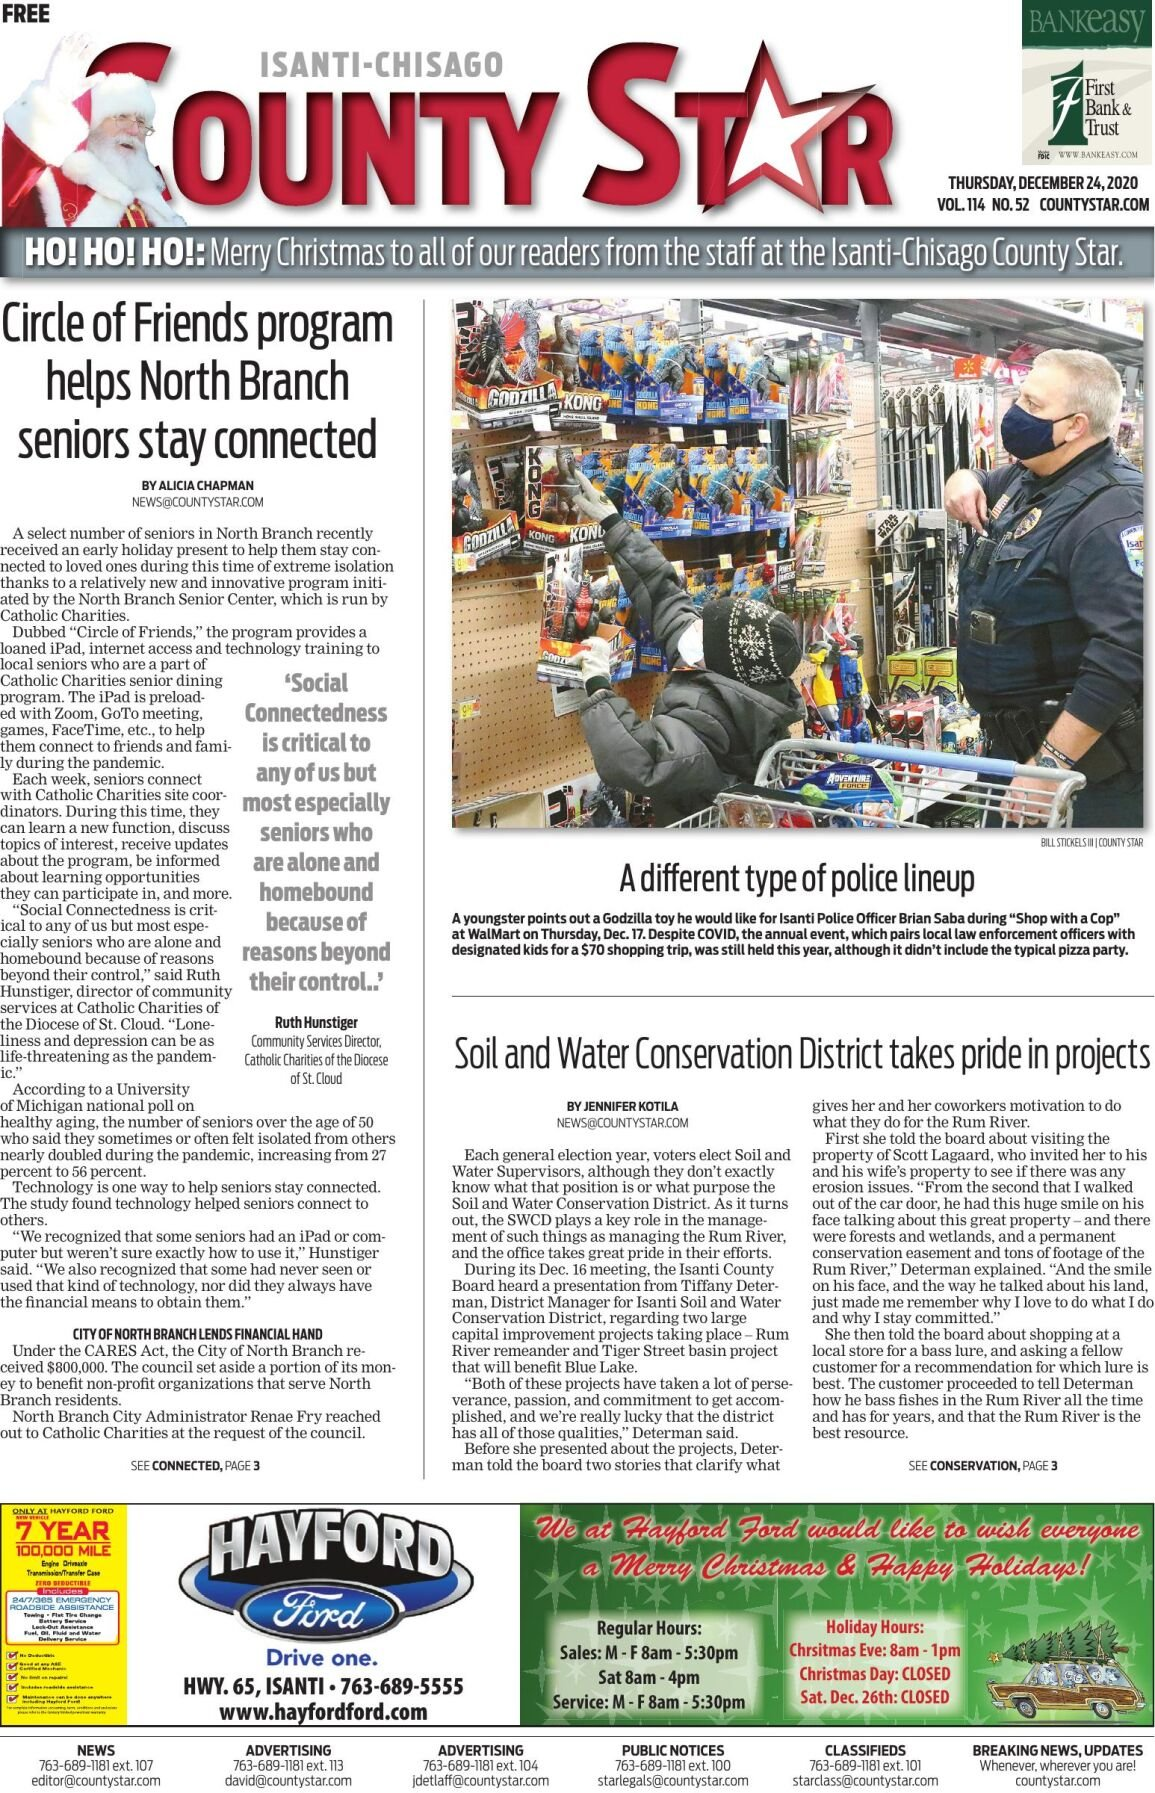 Isanti-Chisago County Star December 24, 2020 e-edition